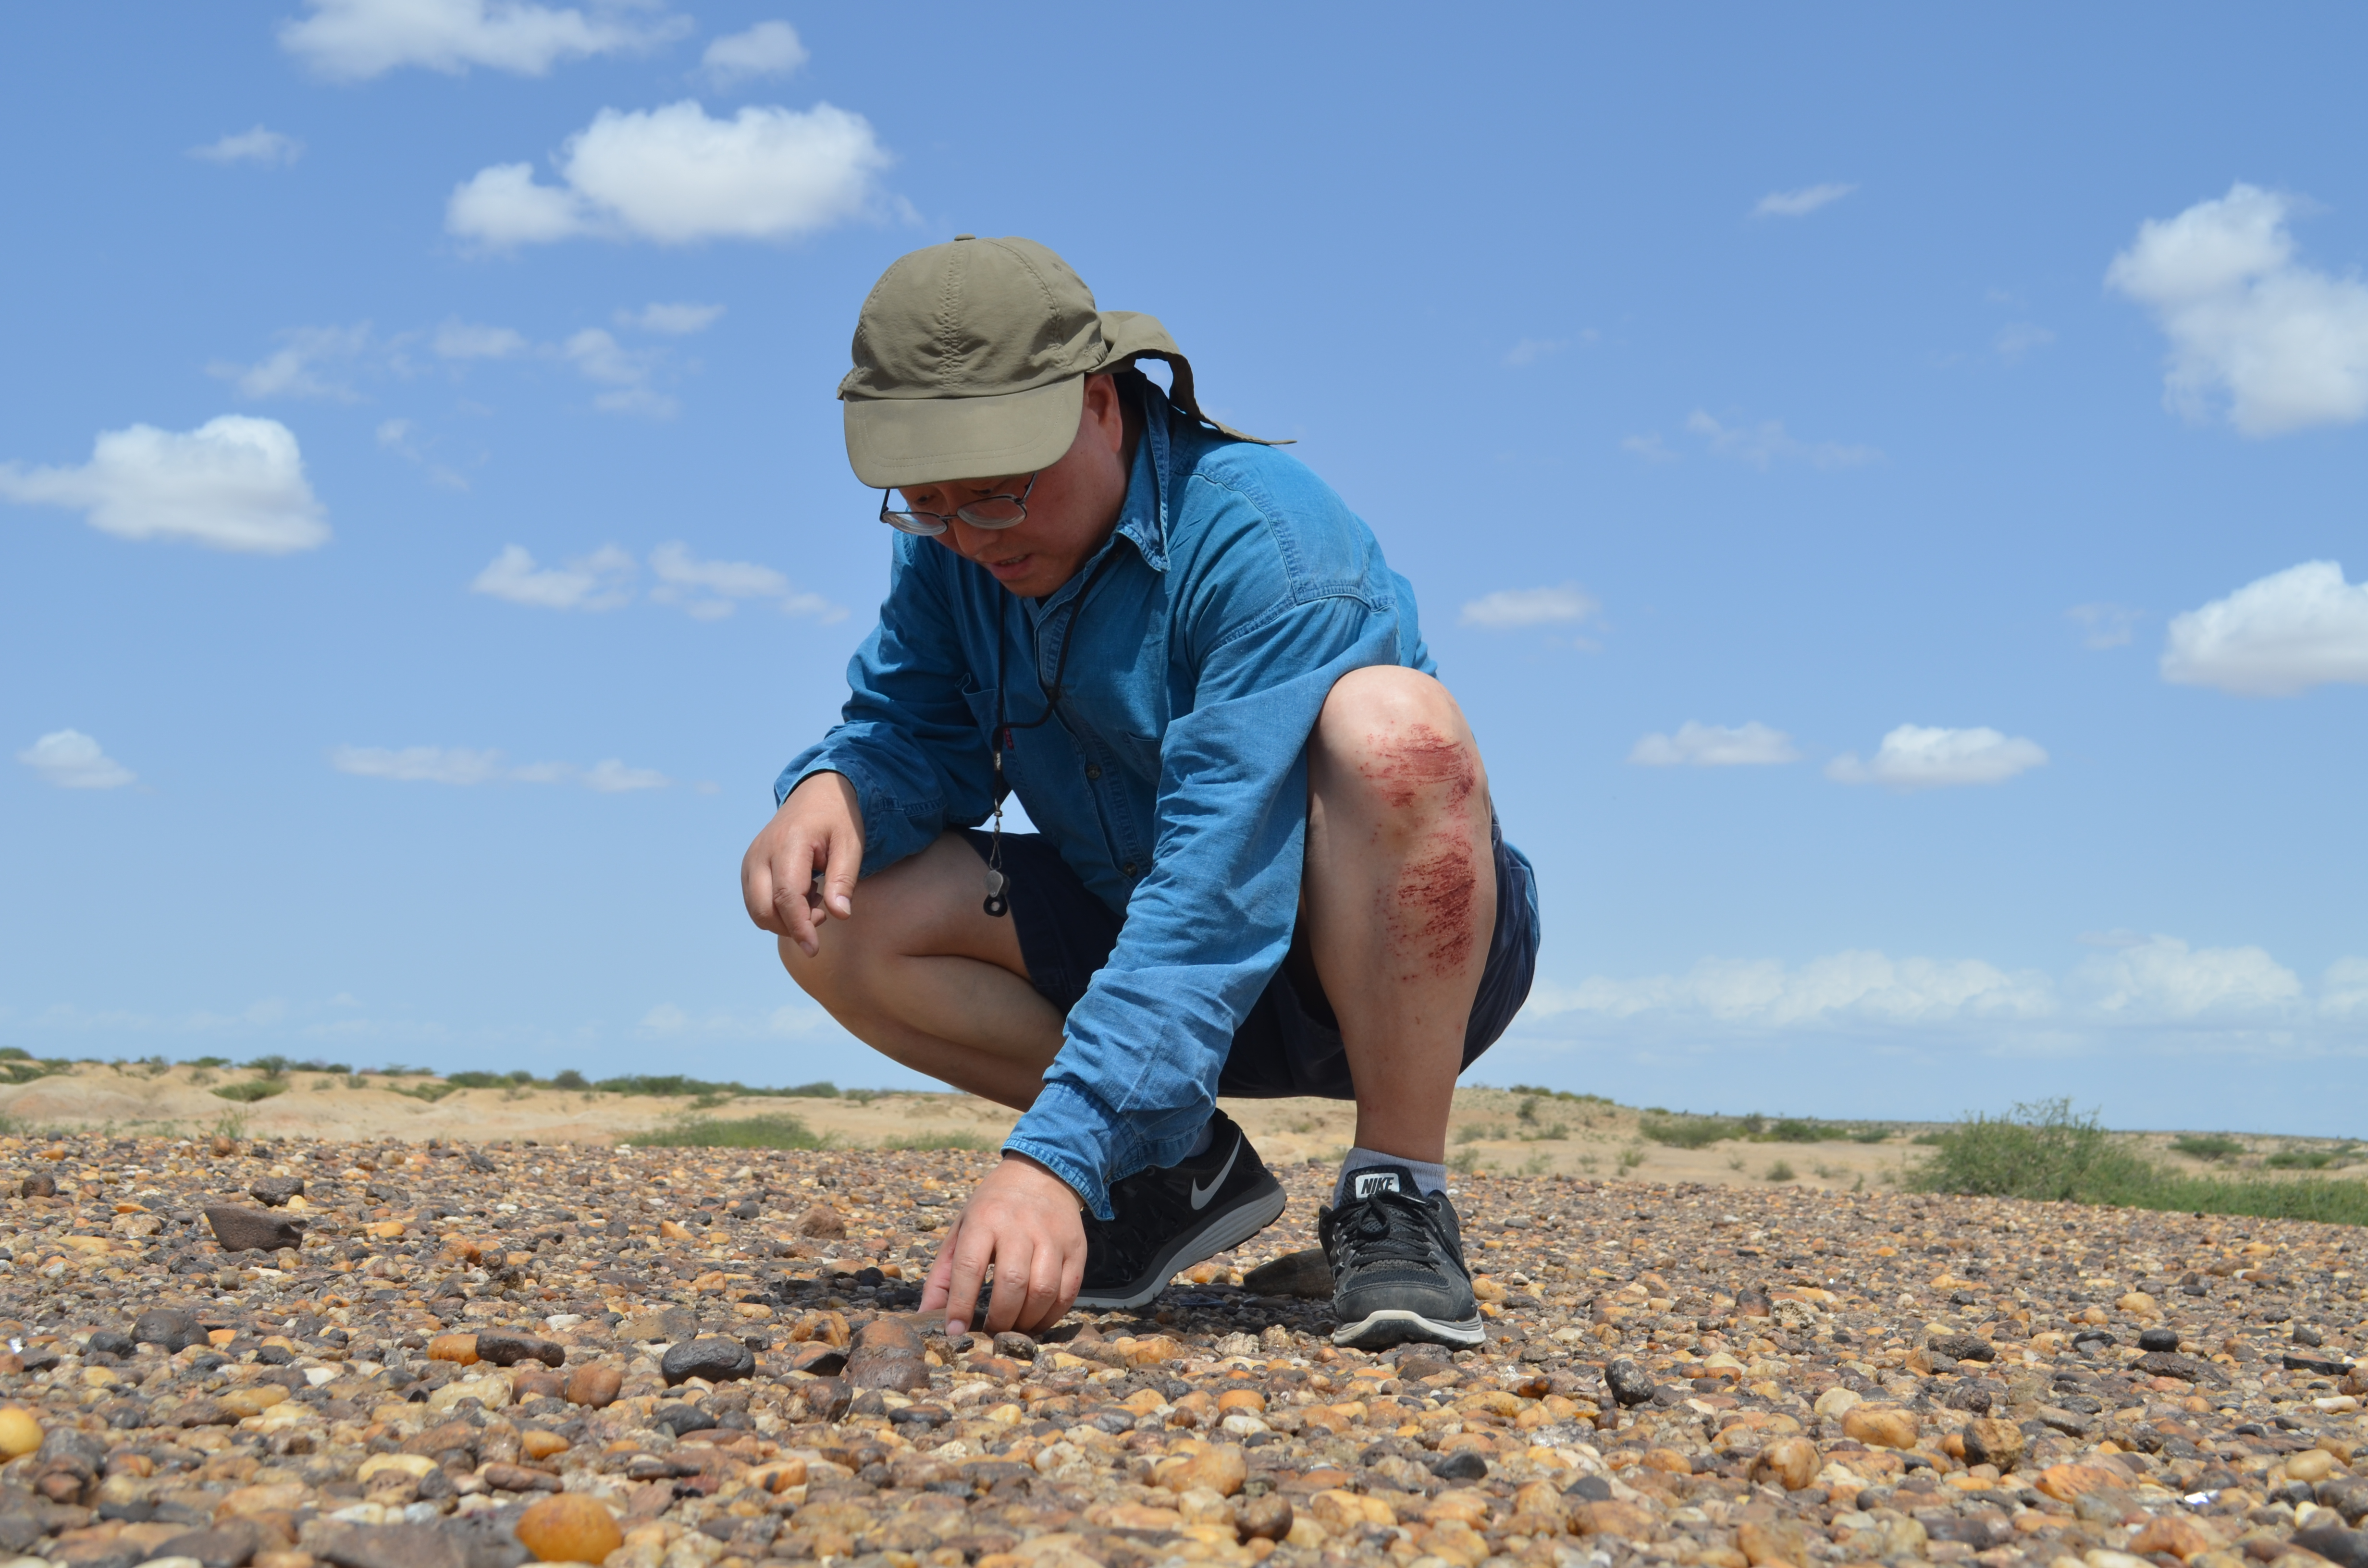 Geochemist Tanzhuo Liu hunts for rock samples that he hopes will help chart past climate swings.